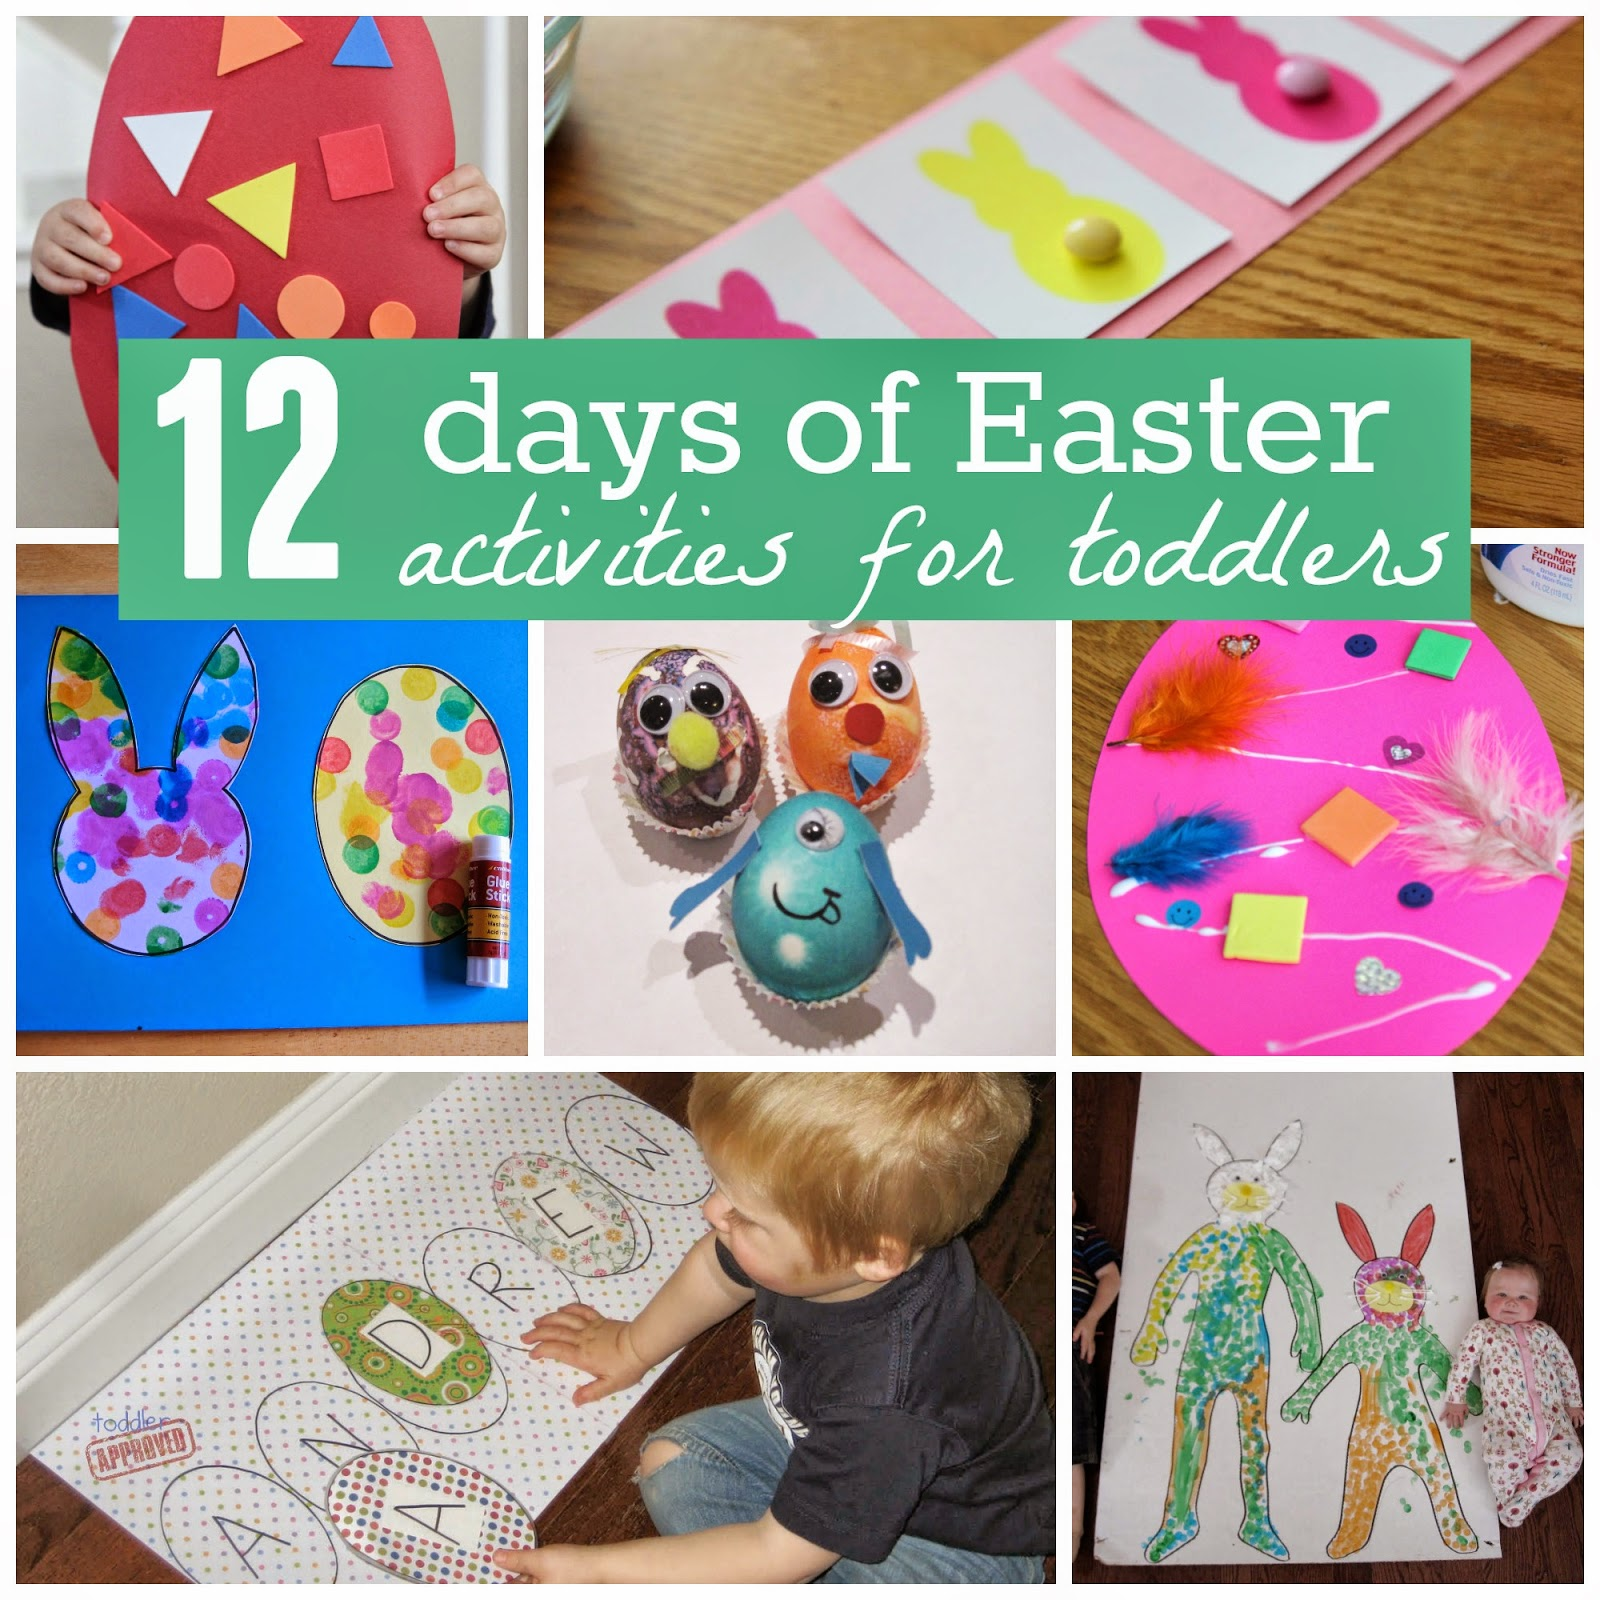 Toddler Approved!: A Very Toddler Easter {12 Days Of